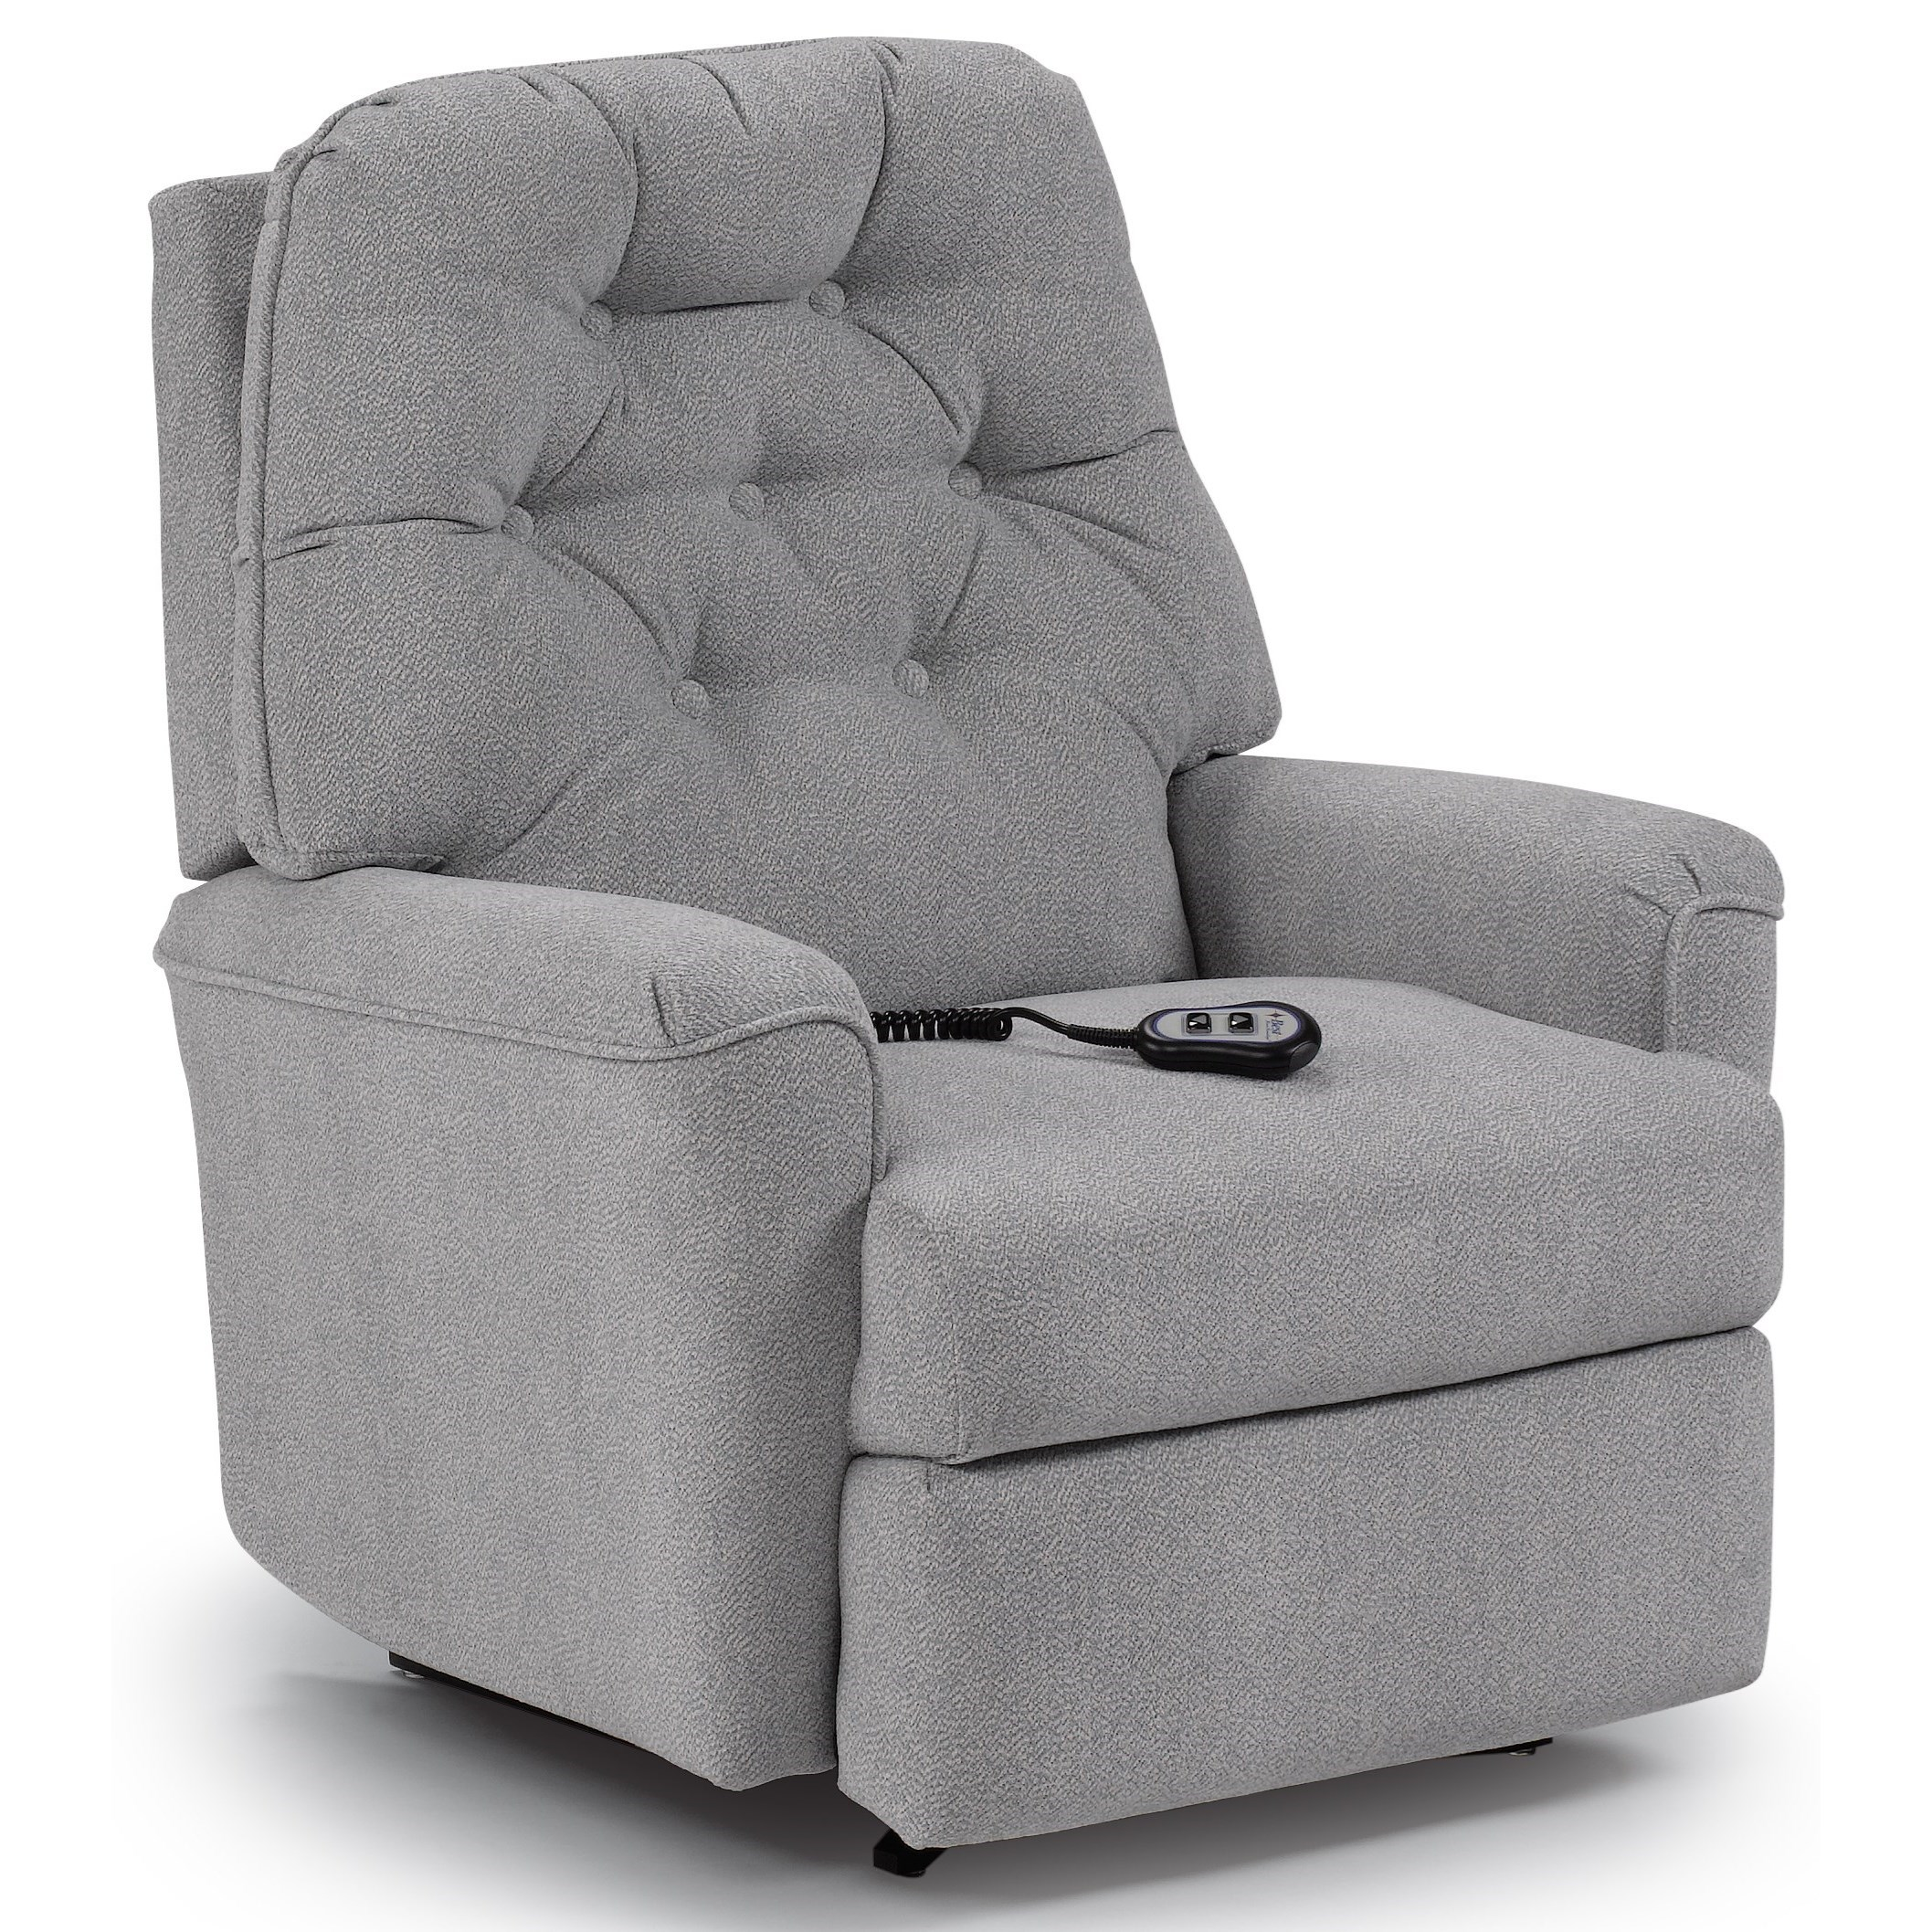 Best Home Furnishings Recliners - Medium Cara Power Lift Recliner - Item Number: 1AW41